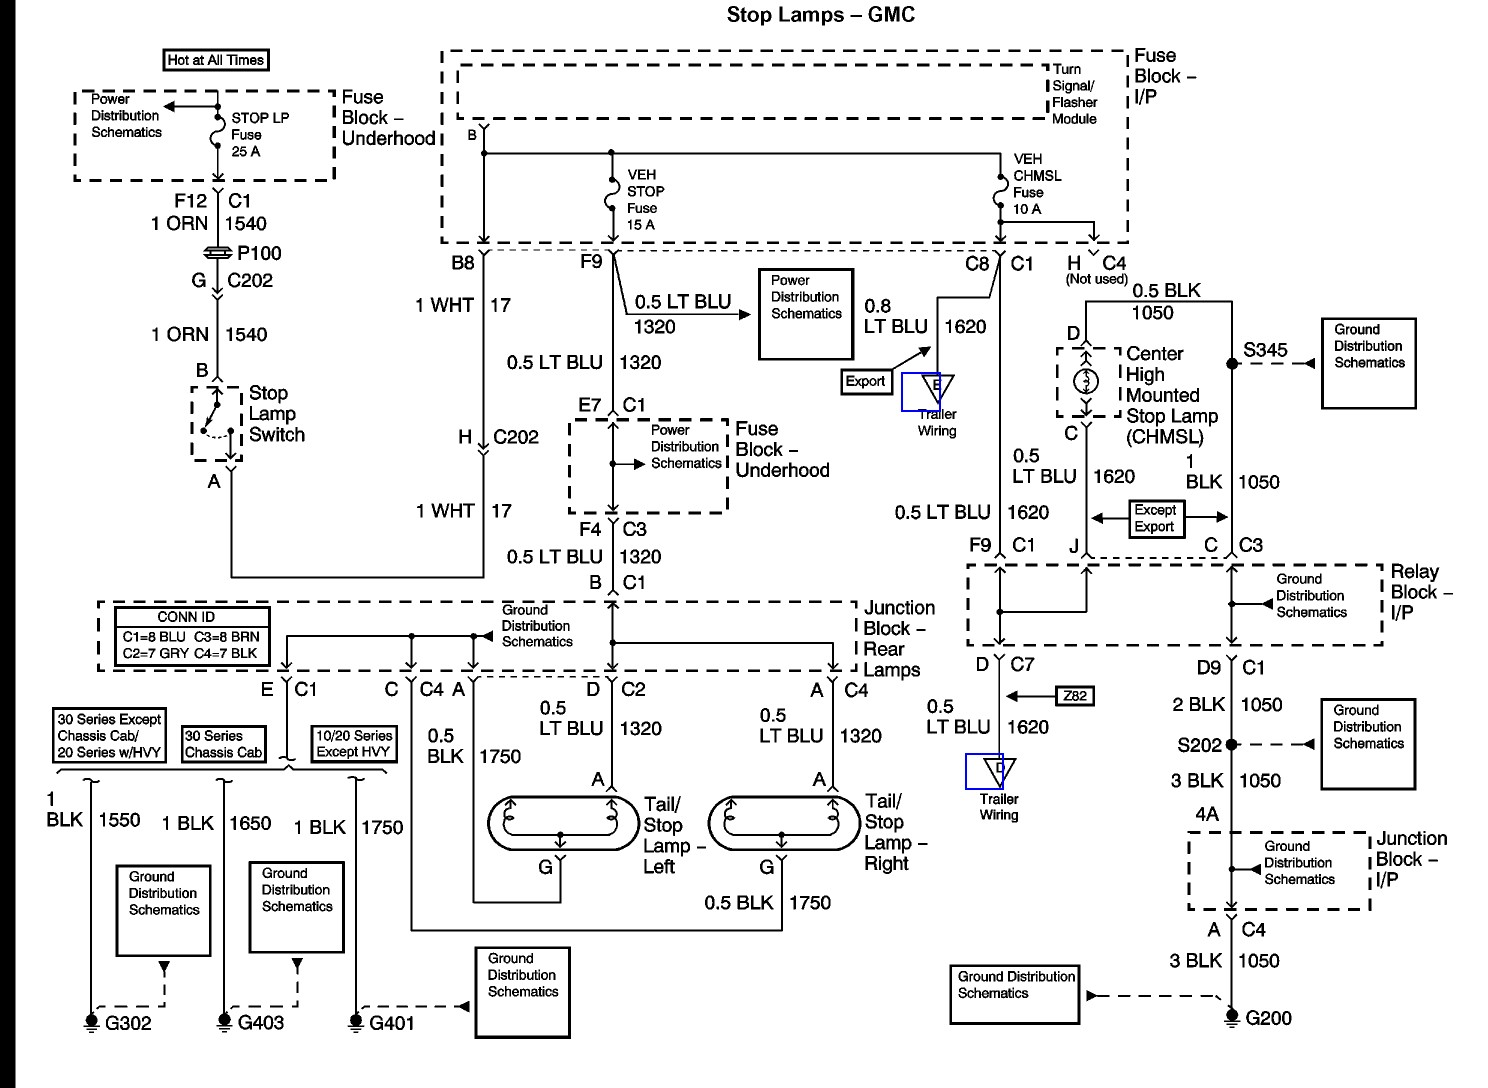 Radio Wiring Diagram For A 2000 Chevy Silverado : Chevy silverado truck wiring diagrams